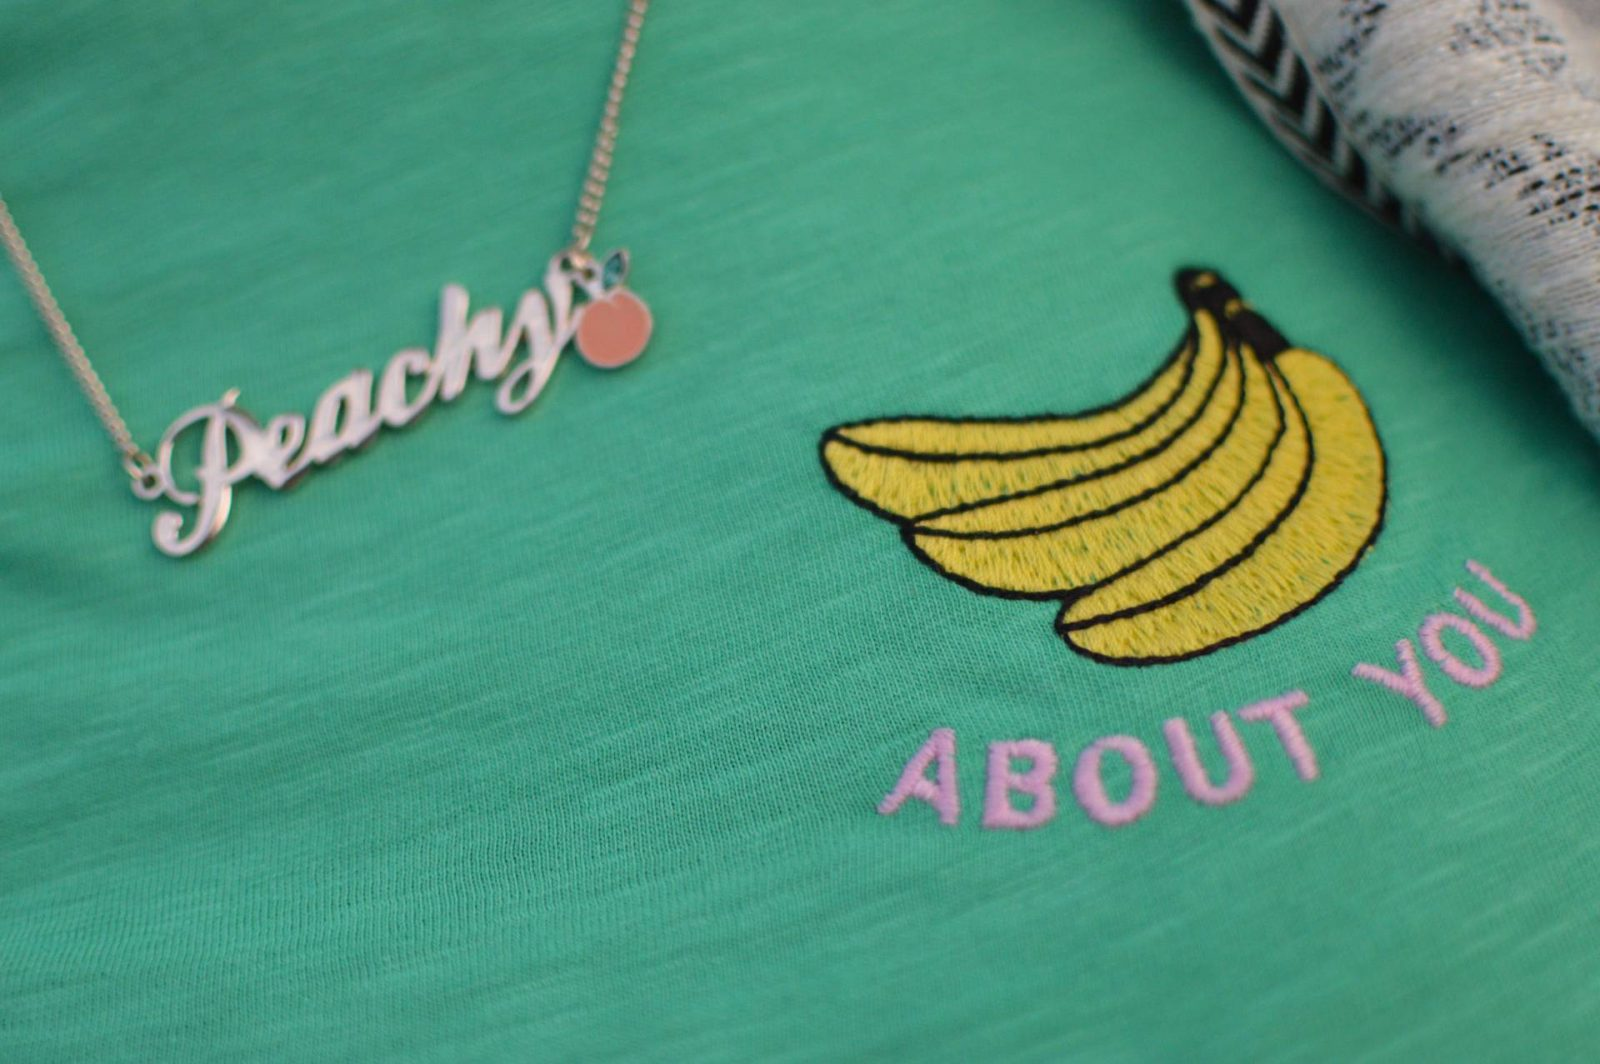 A wonderful week in Brittany + Sunday Reflections link up, Skinny Dip Peachy necklace, Topshop bananas T-shirt